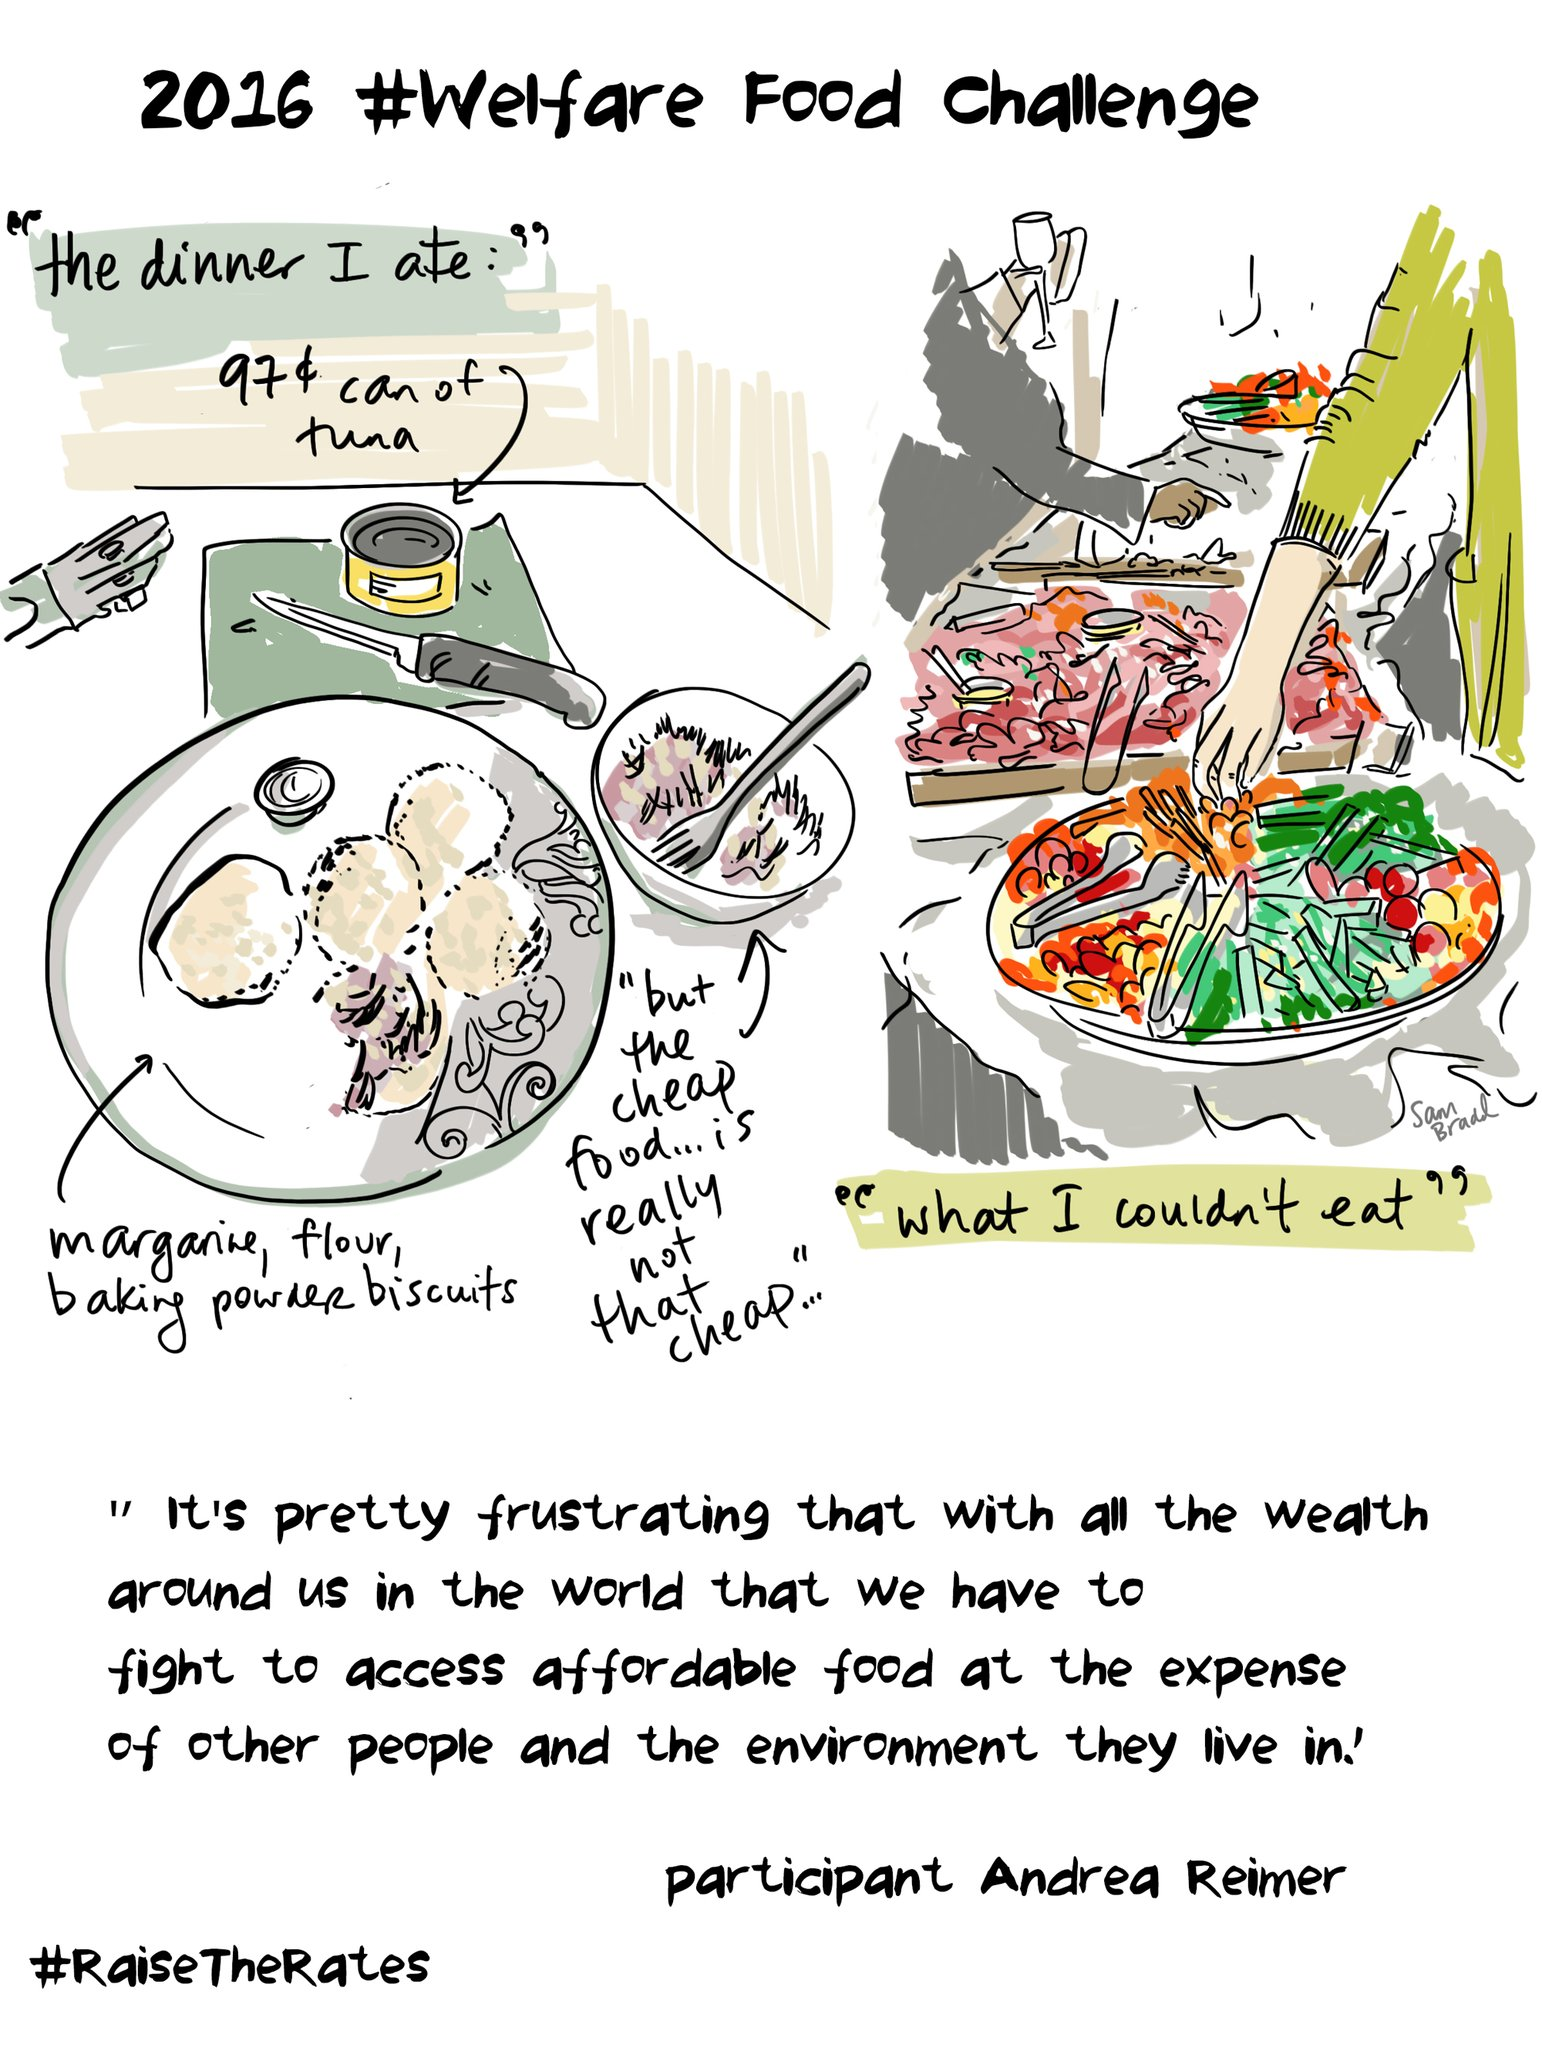 Sam Bradd illustrates Andrea Reimer's Day 3 of the 2016 Welfare Food Challenge